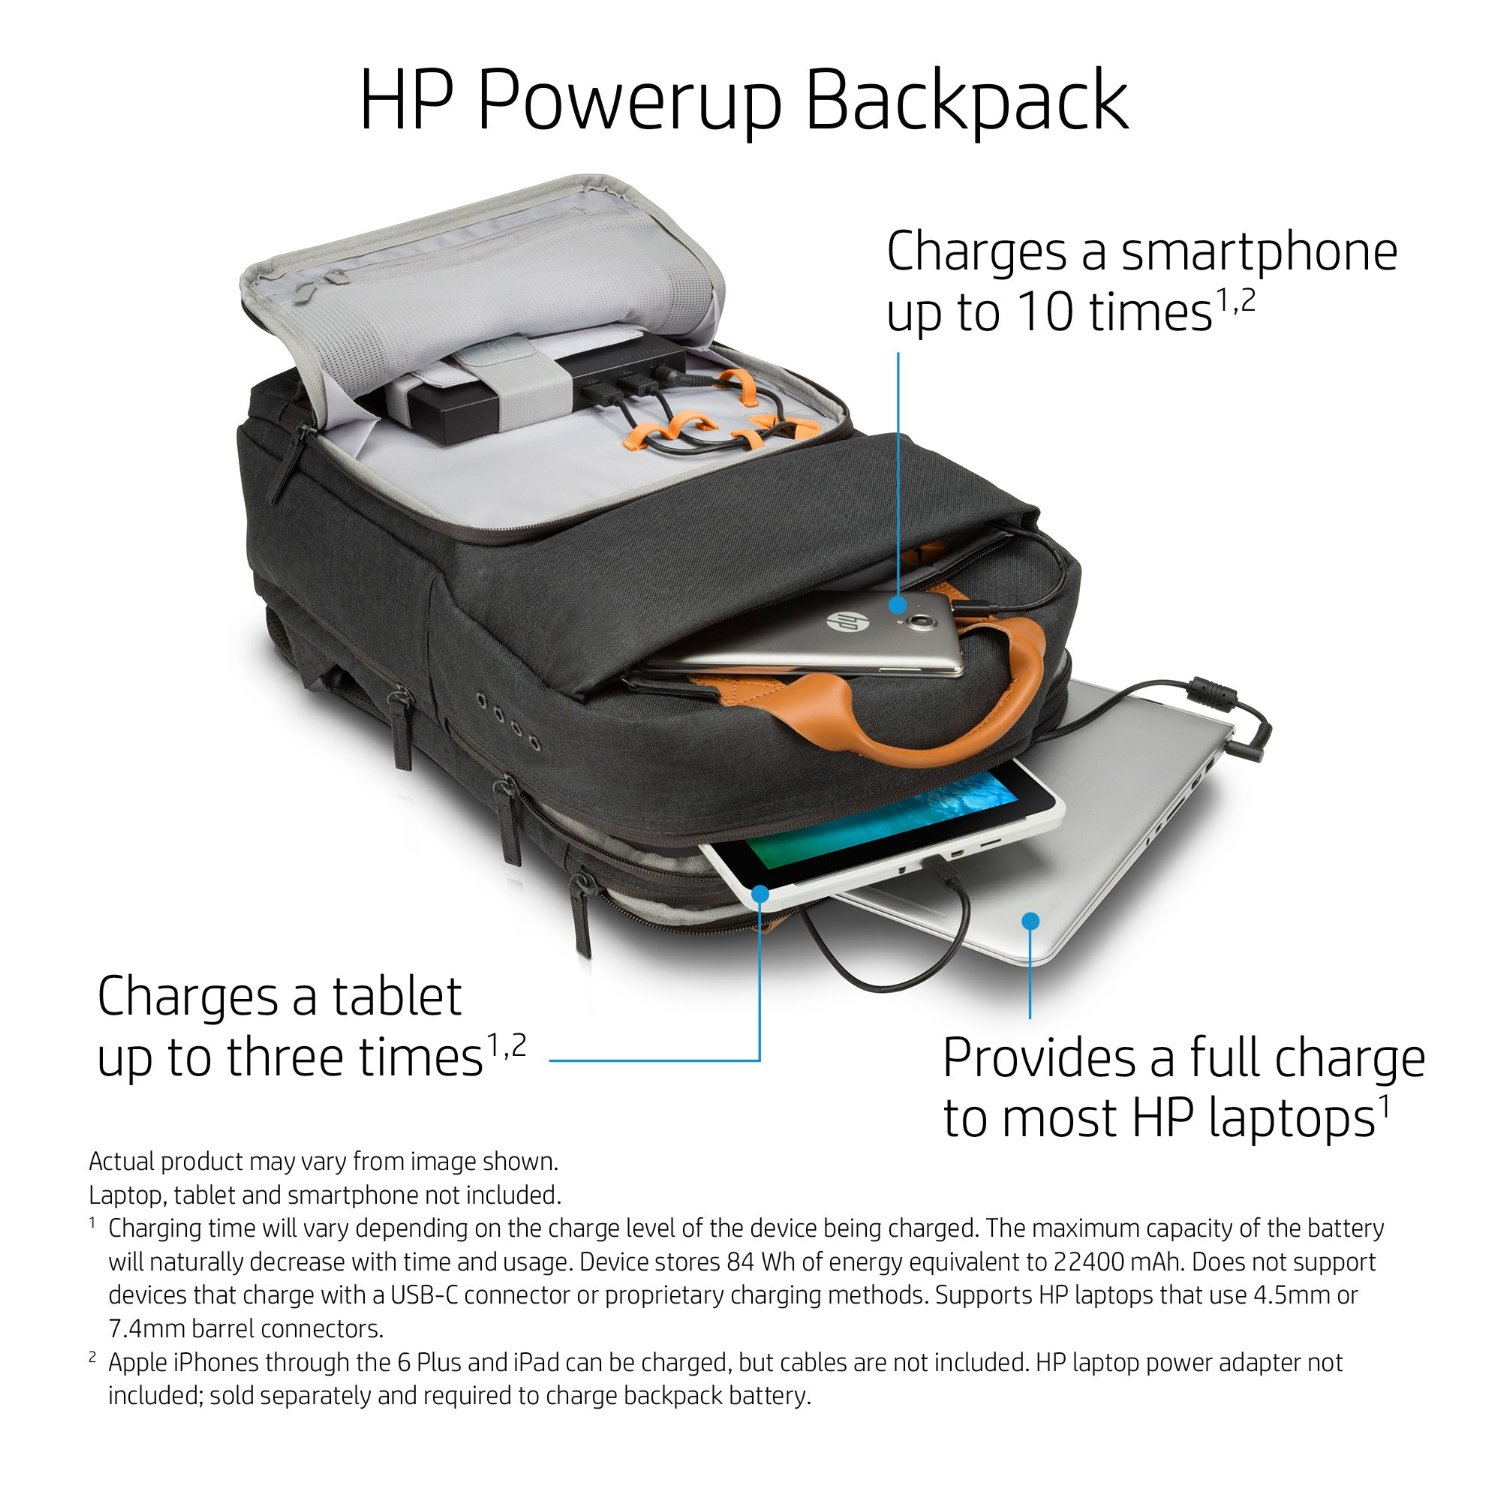 HP announces new Powerup Backpack for HP devices